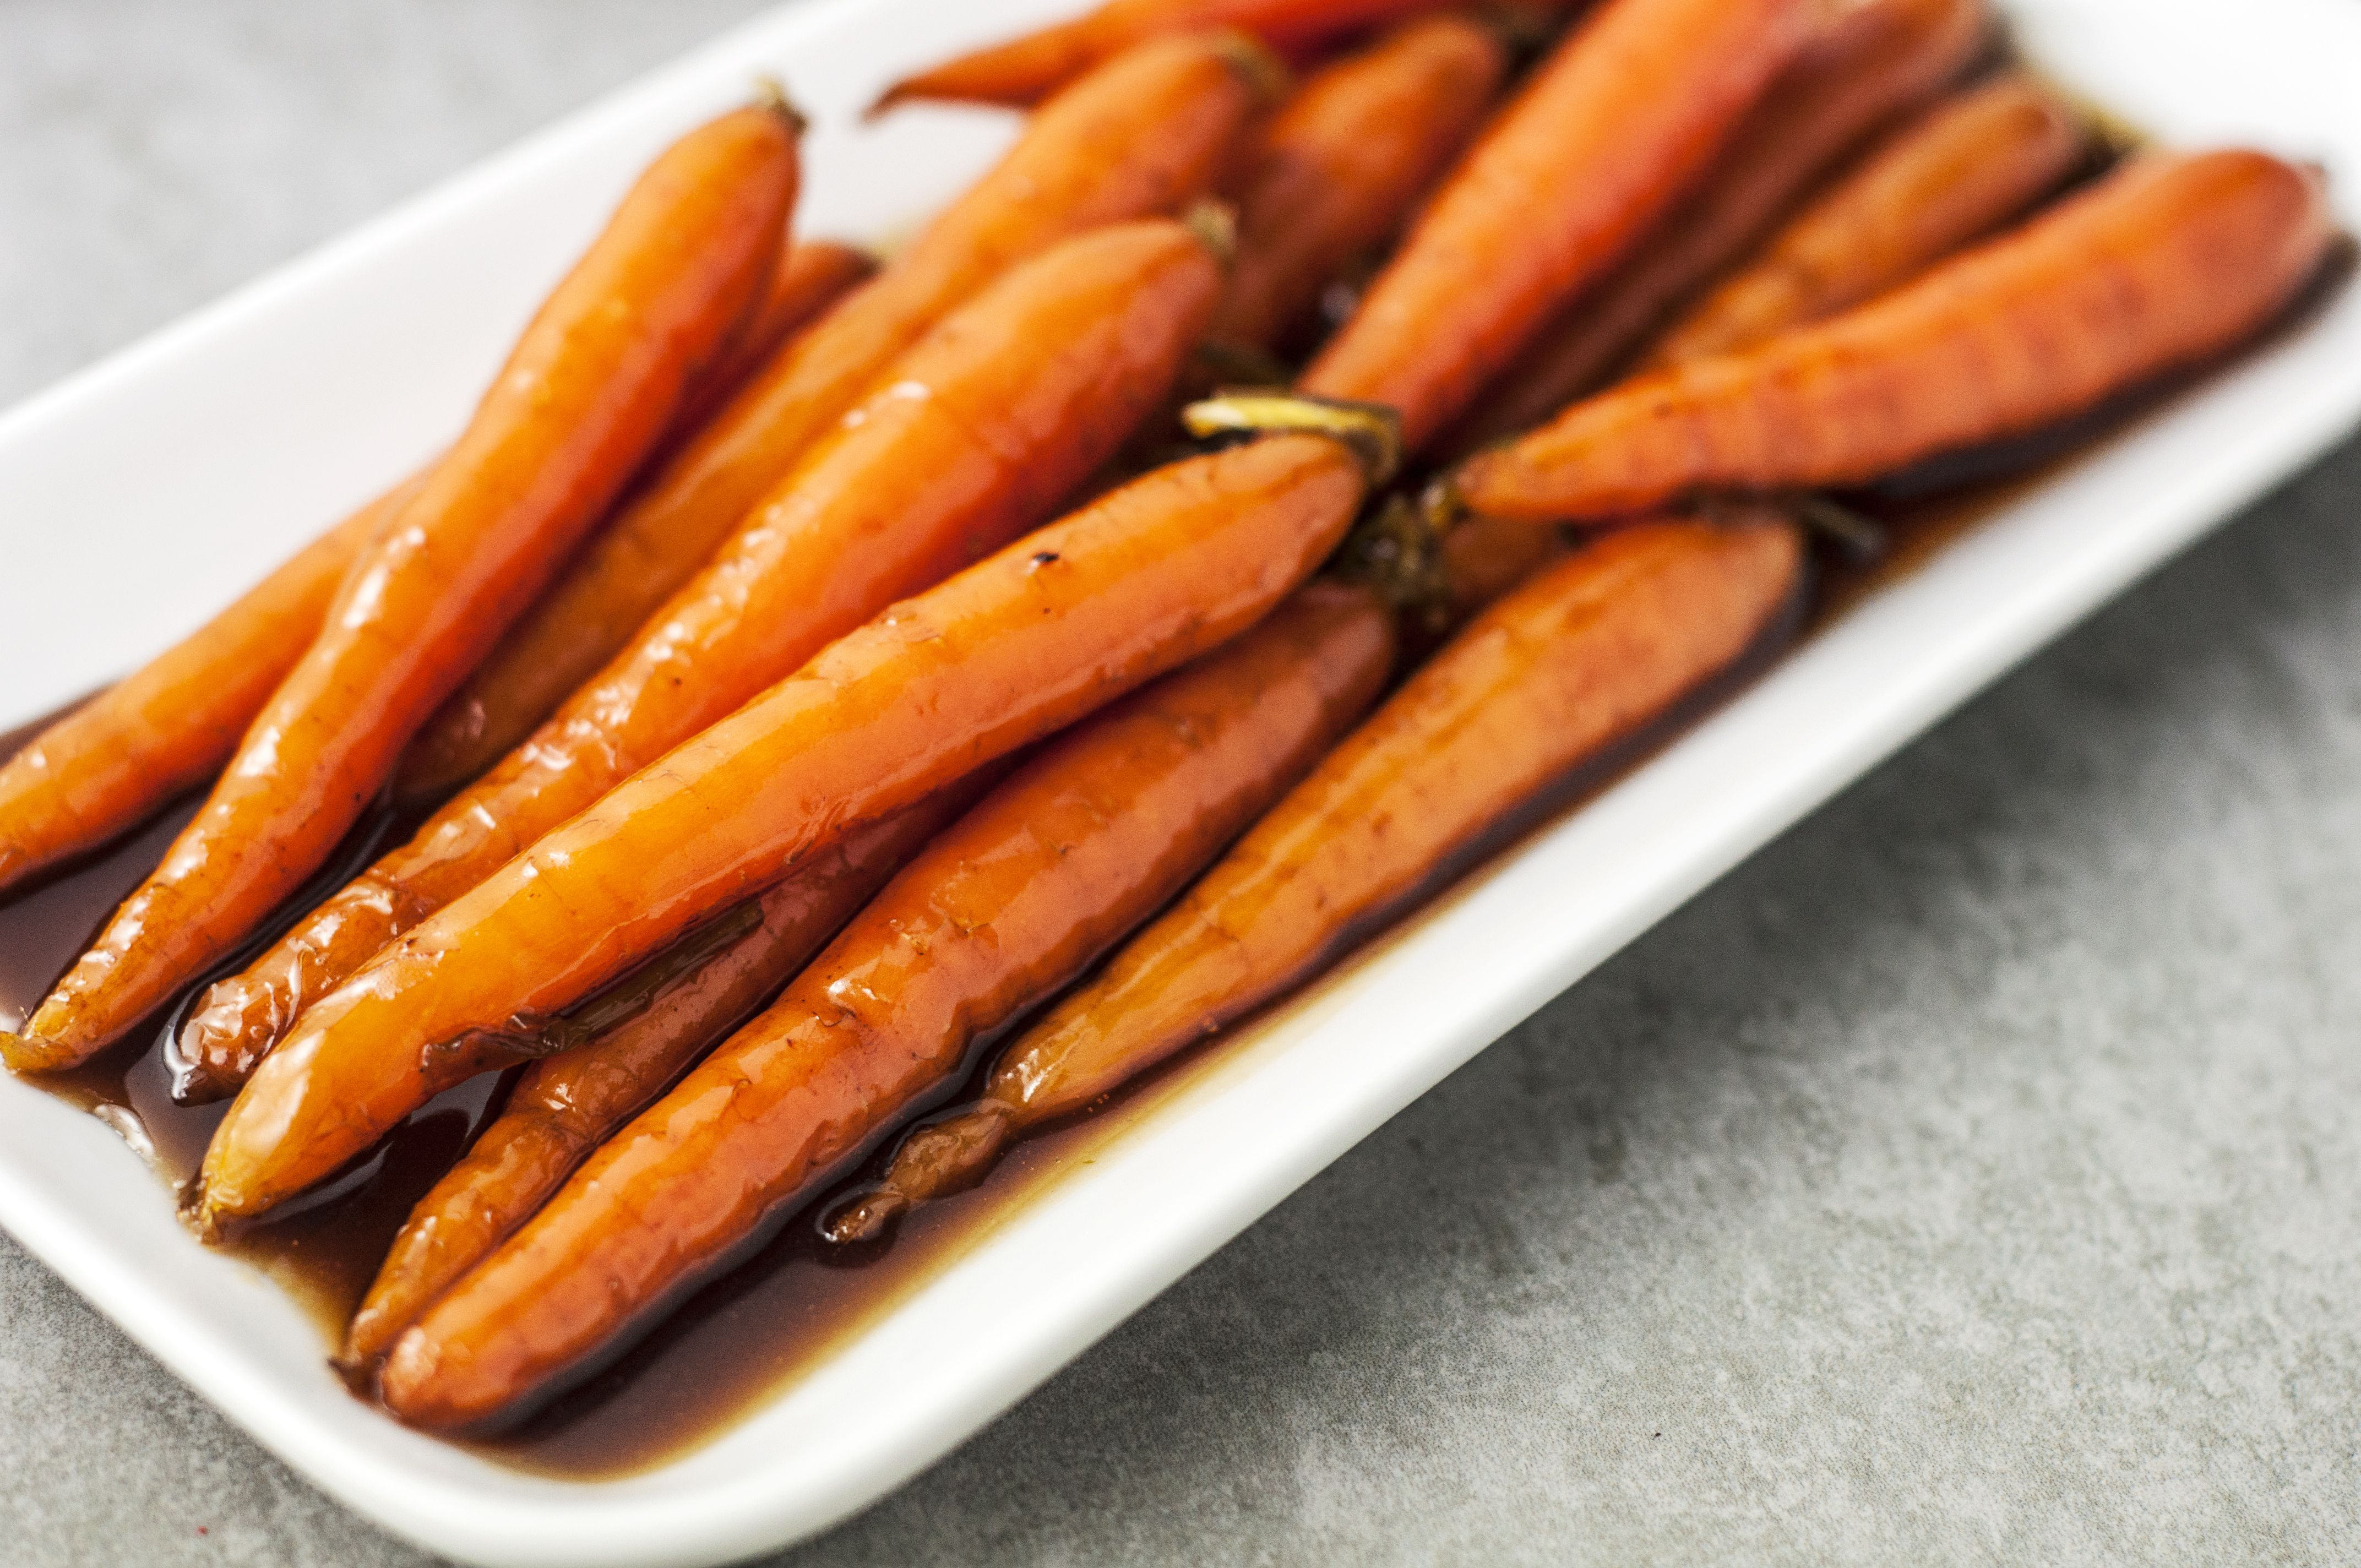 Brown Sugar Glazed Carrots plated